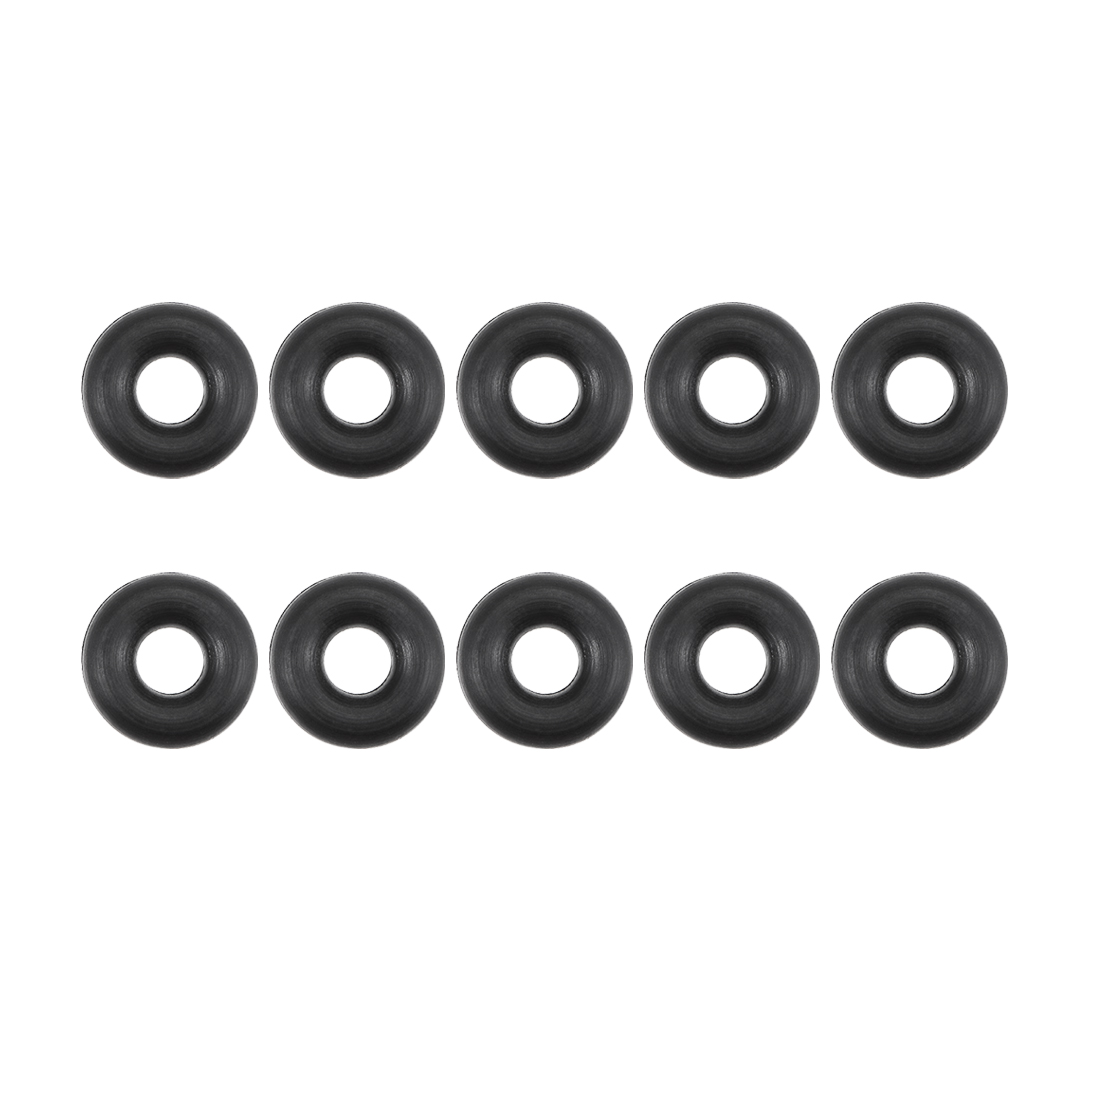 Silicone O-Rings 7mm OD 4mm Inner Diameter 1.5mm Width Seal Gasket White 30Pcs